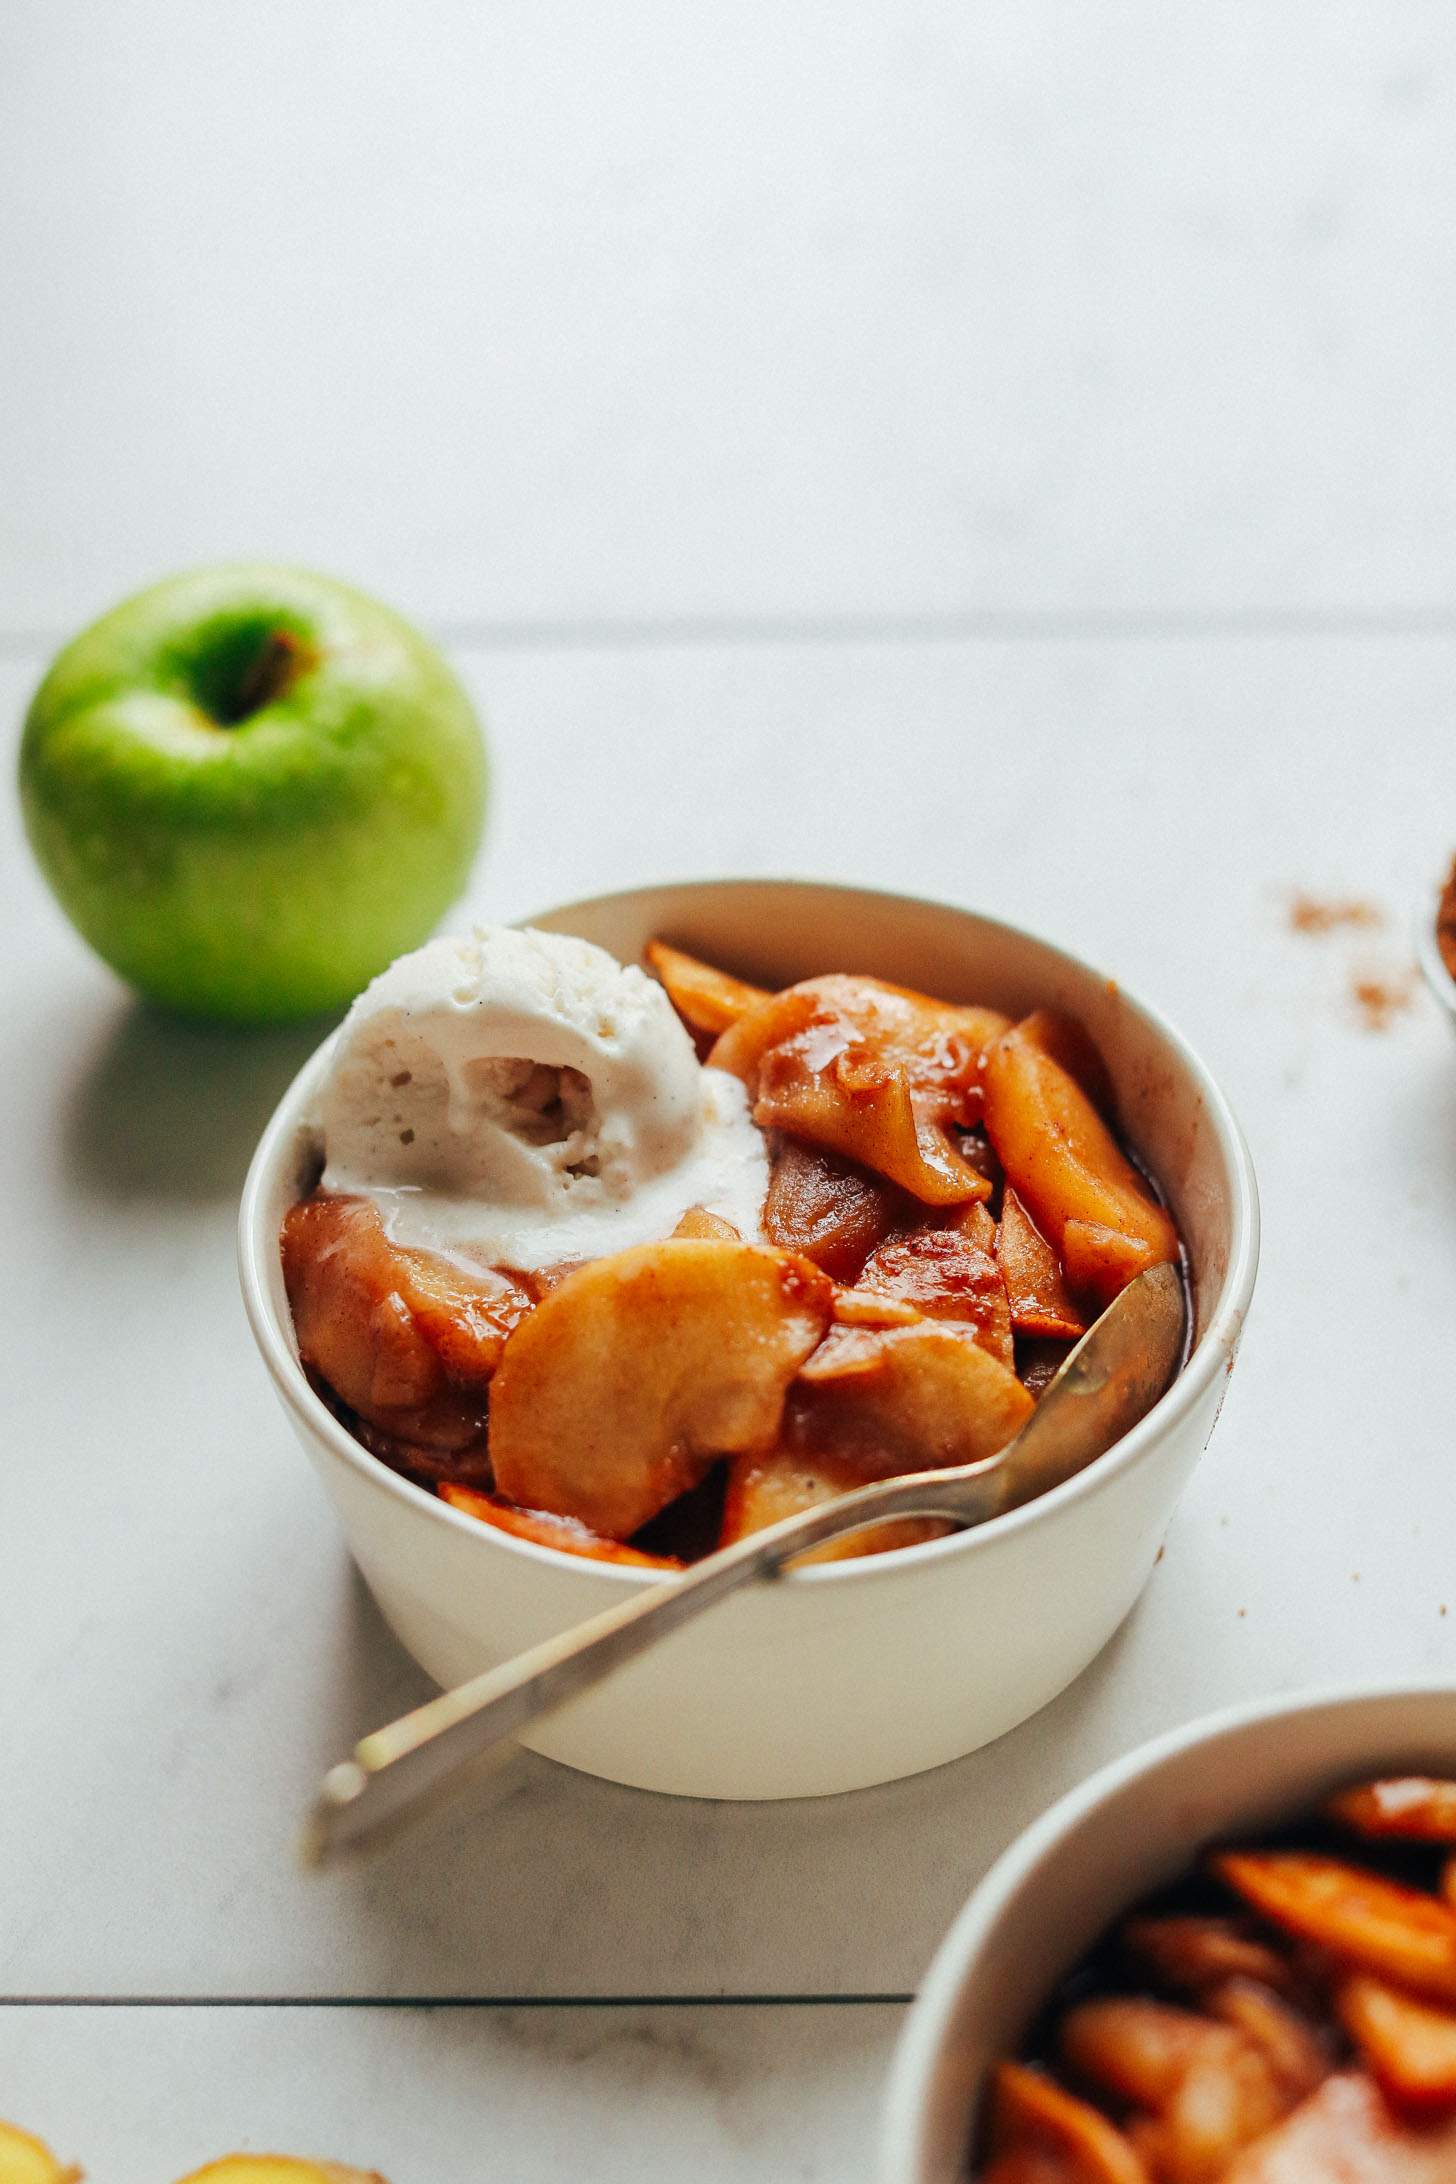 Close up shot of a bowl of Cinnamon Baked Apples with a scoop of vegan ice cream